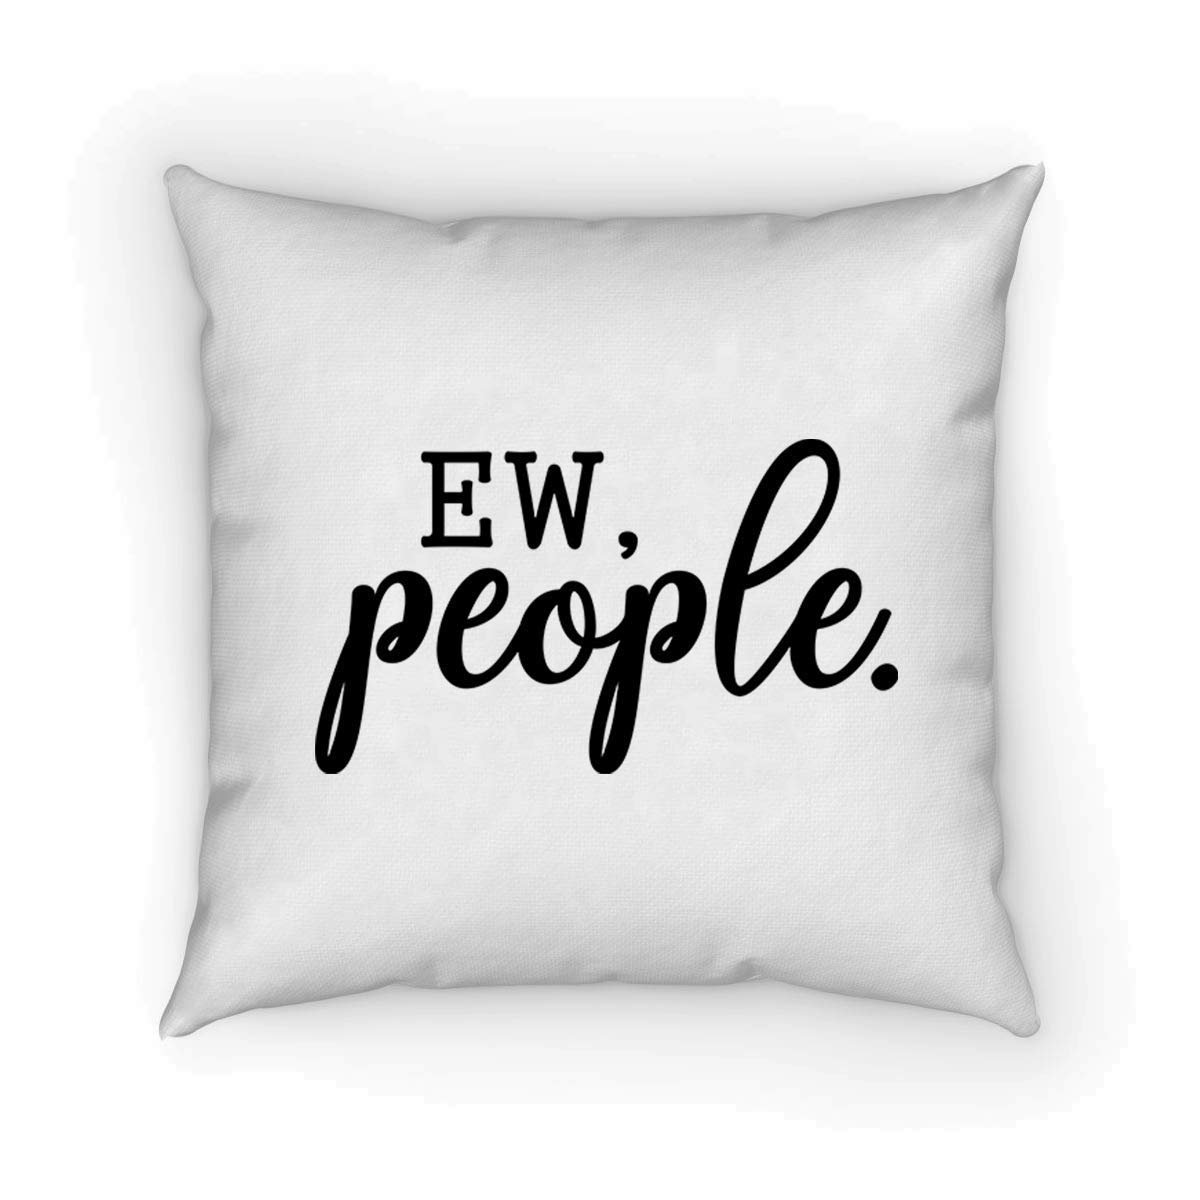 throw pillow cover Sassy quote 18 x 18 Inch Winter Holiday Rustic Farmhouse Linen Cushion Case for Sofa Couch Ew People funny home d/écor White Funny Pillow,Sassy Pillow sarcastic quote